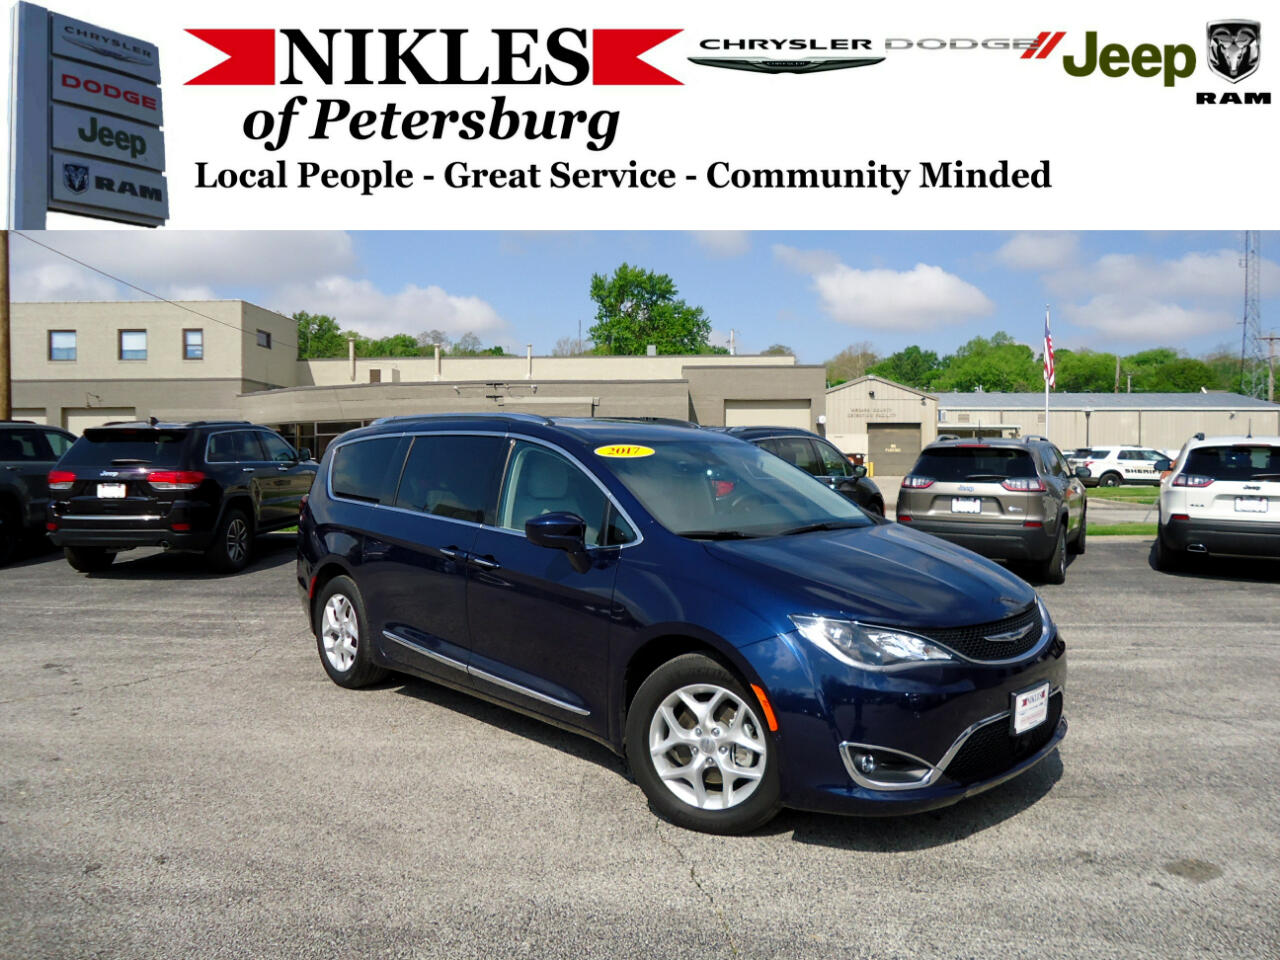 2017 Chrysler Pacifica 4dr Wgn Touring-L Plus